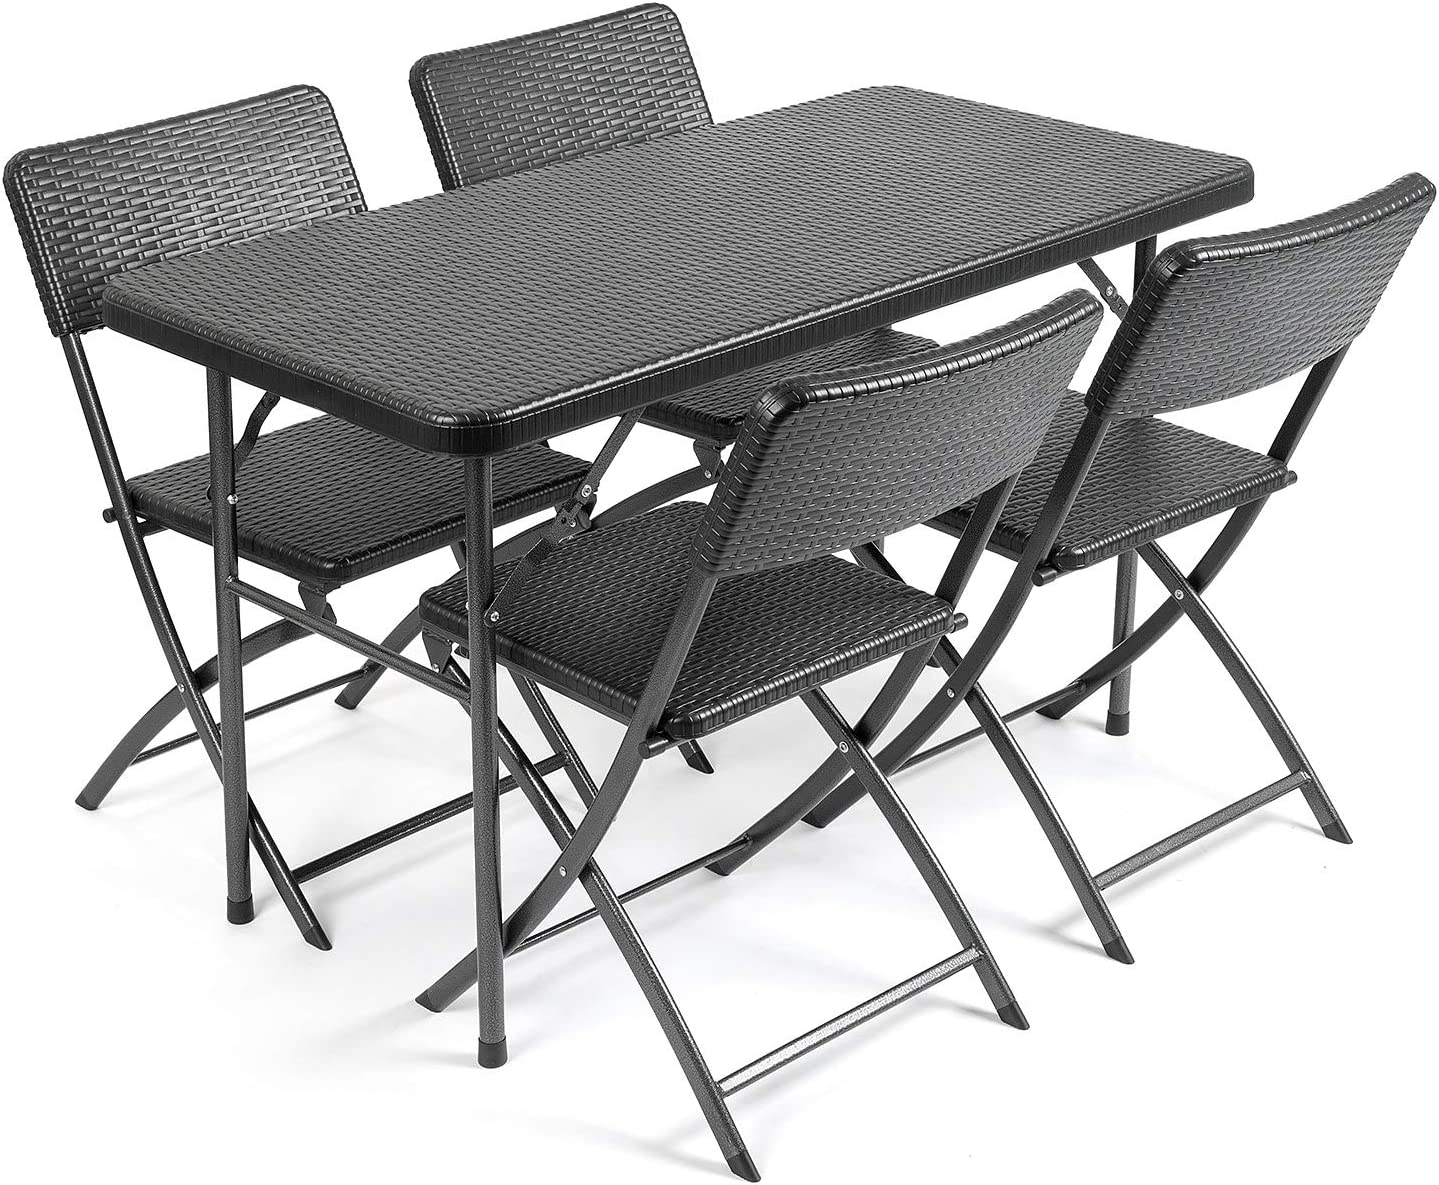 Christow Rattan Effect Garden Dining Set 4ft Folding Table 4 Chairs Furniture Amazon Co Uk Kitchen Home